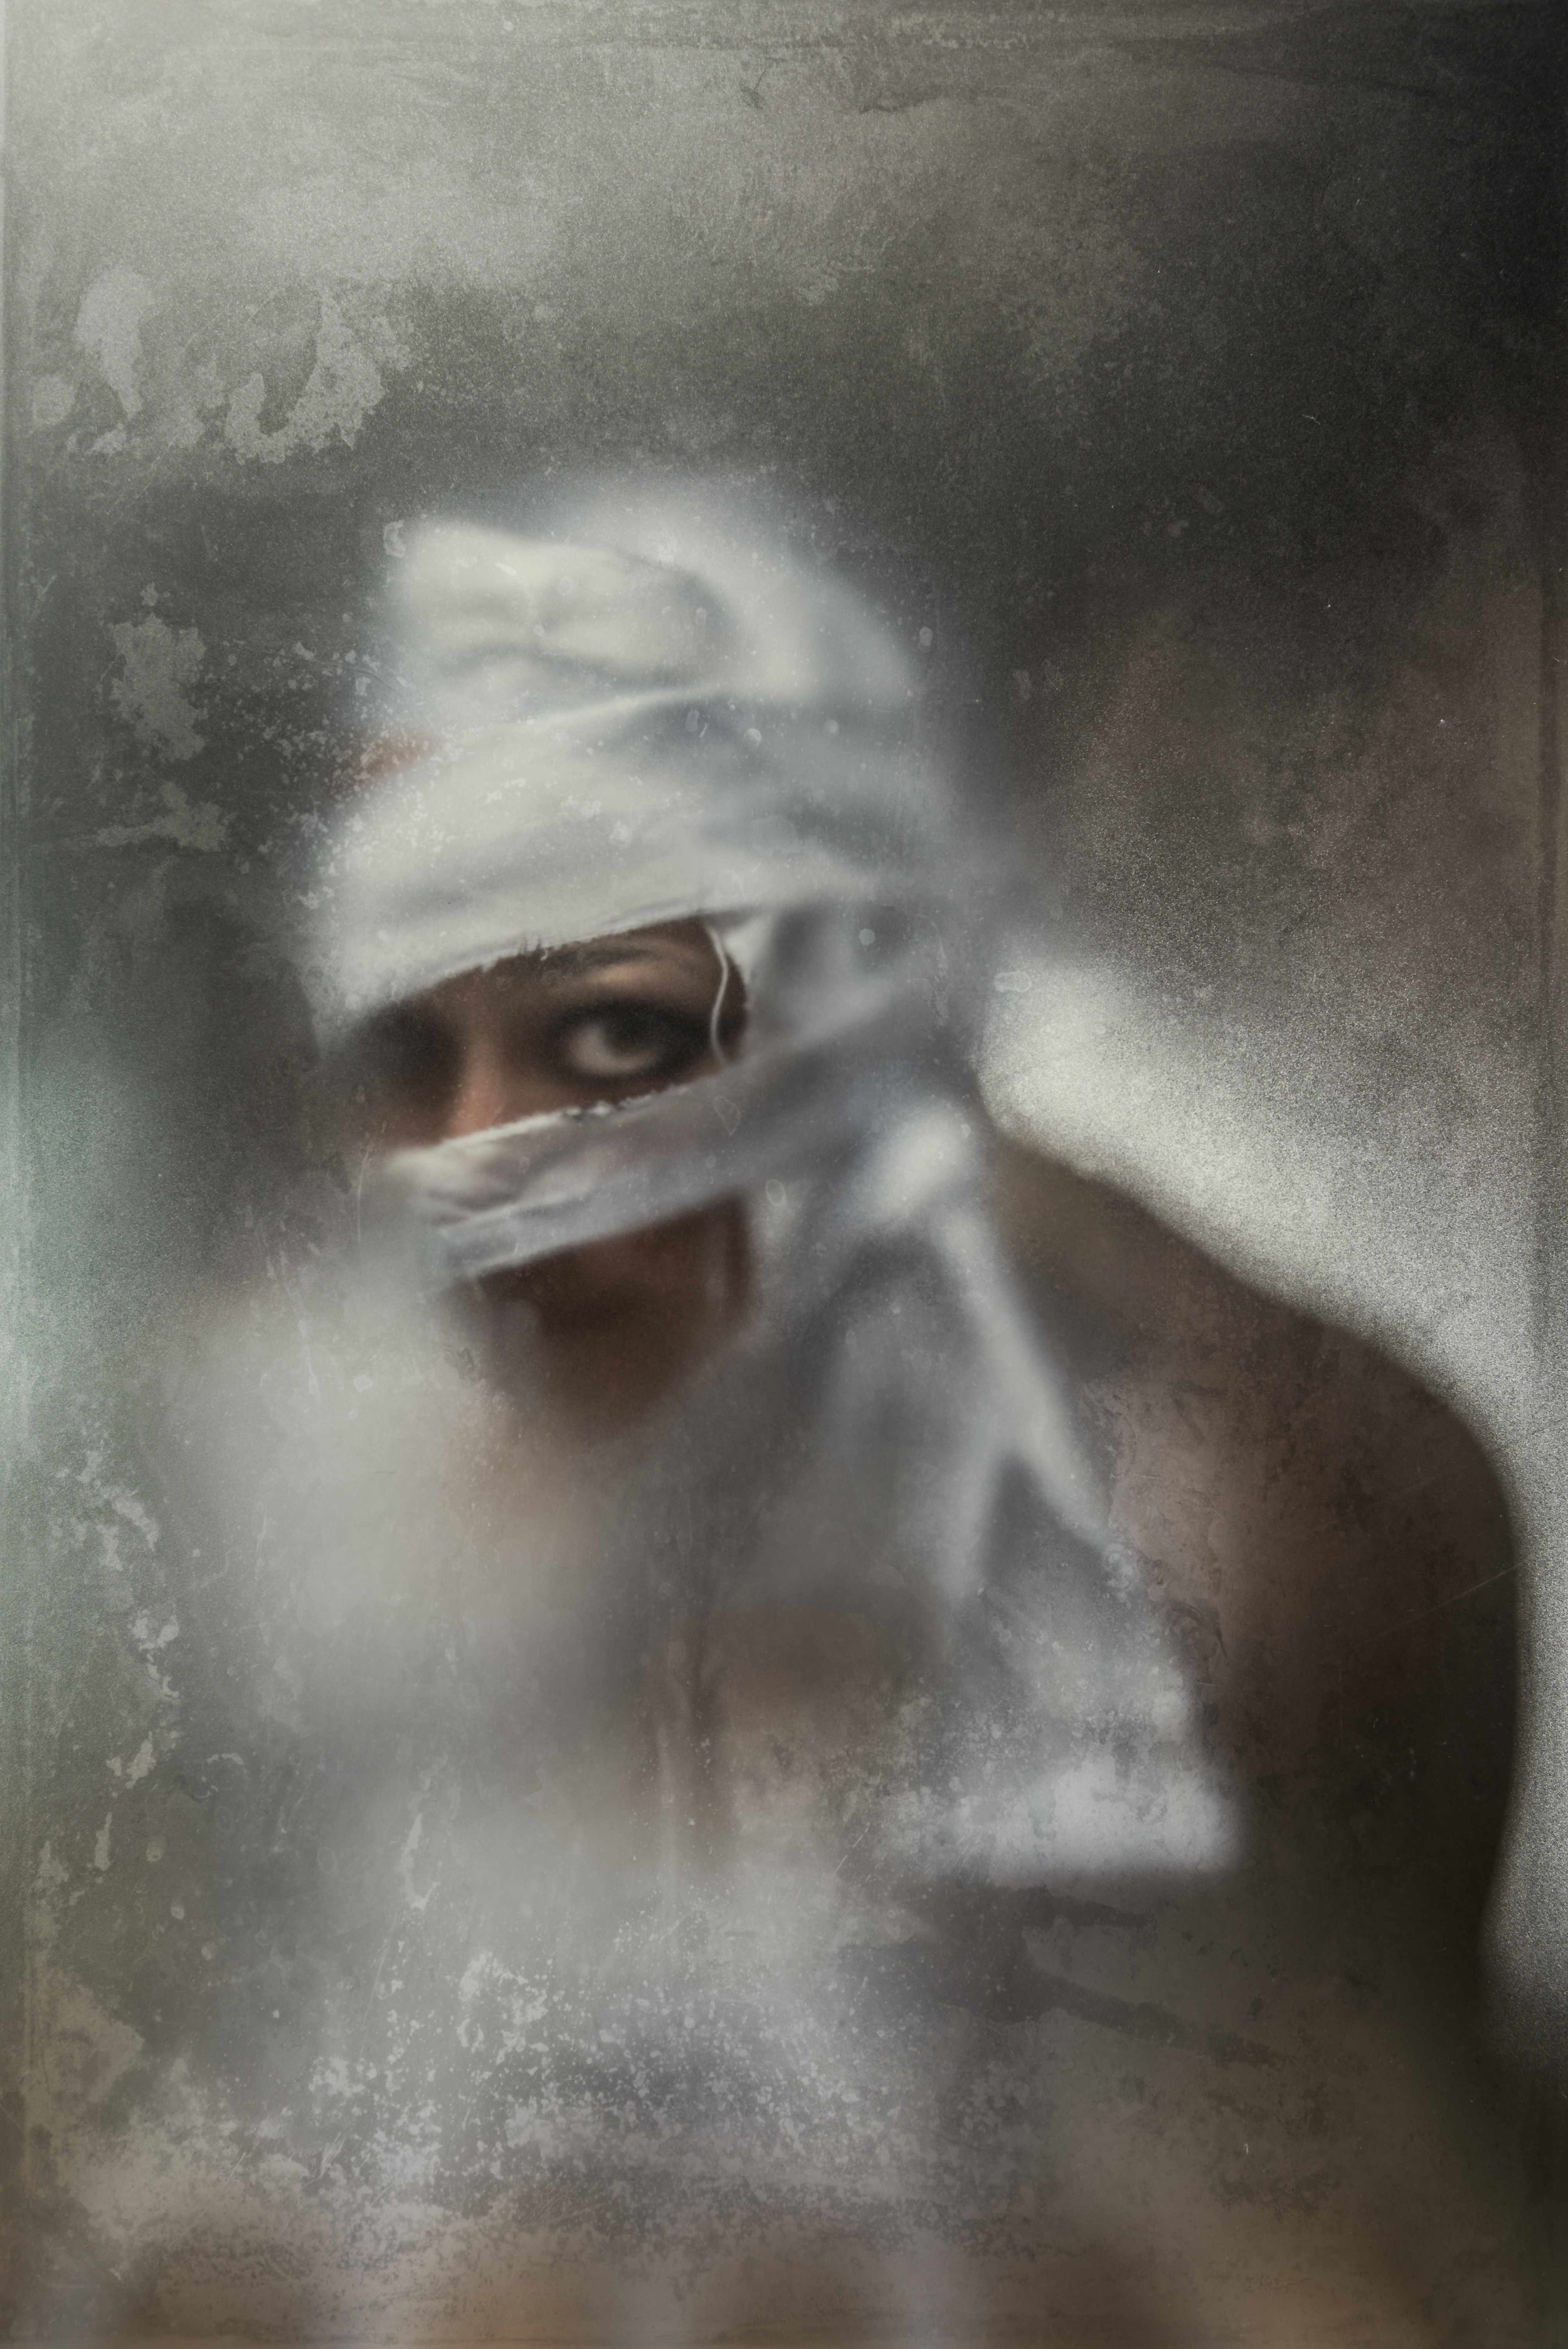 austin-trigg-halloween-spooky-portraits-mummy-lighting-project-personal-scary-makeup-costume-old-fashion-style-fog-glass.jpg